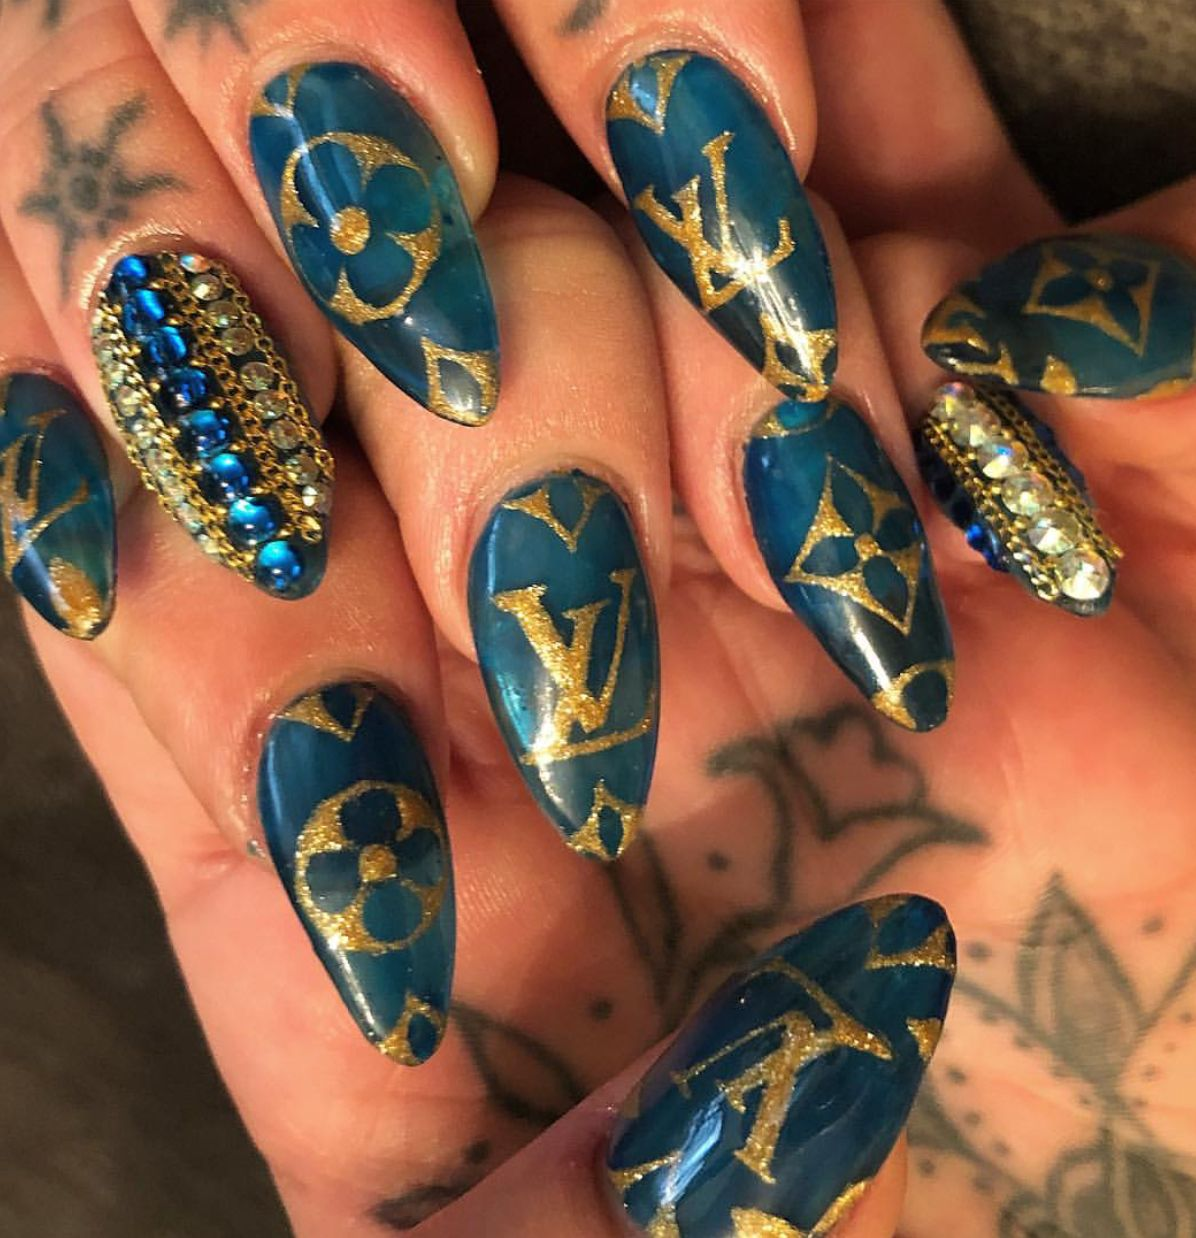 Blue Round Shaped Nails With Gold Louis Vuitton Monogram Style Im In Love With This Nail Design Nailart L Round Shaped Nails Gold Nails Louis Vuitton Nails